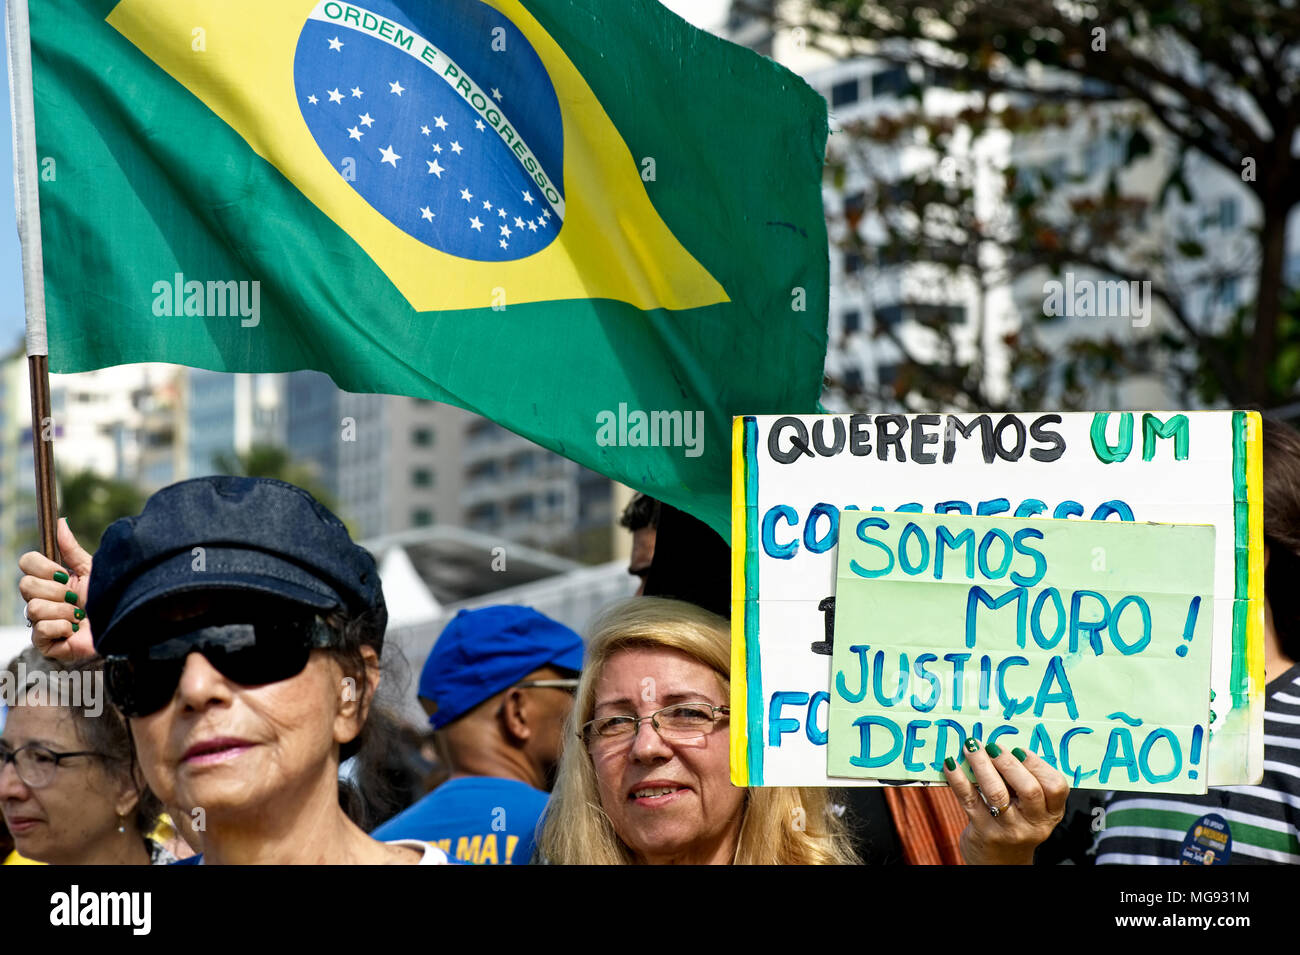 Rio de Janeiro, Brazil - July 31, 2016: Demonstrators show their support for anti-corruption efforts being pursued by the judge Sergio Moro - Stock Image